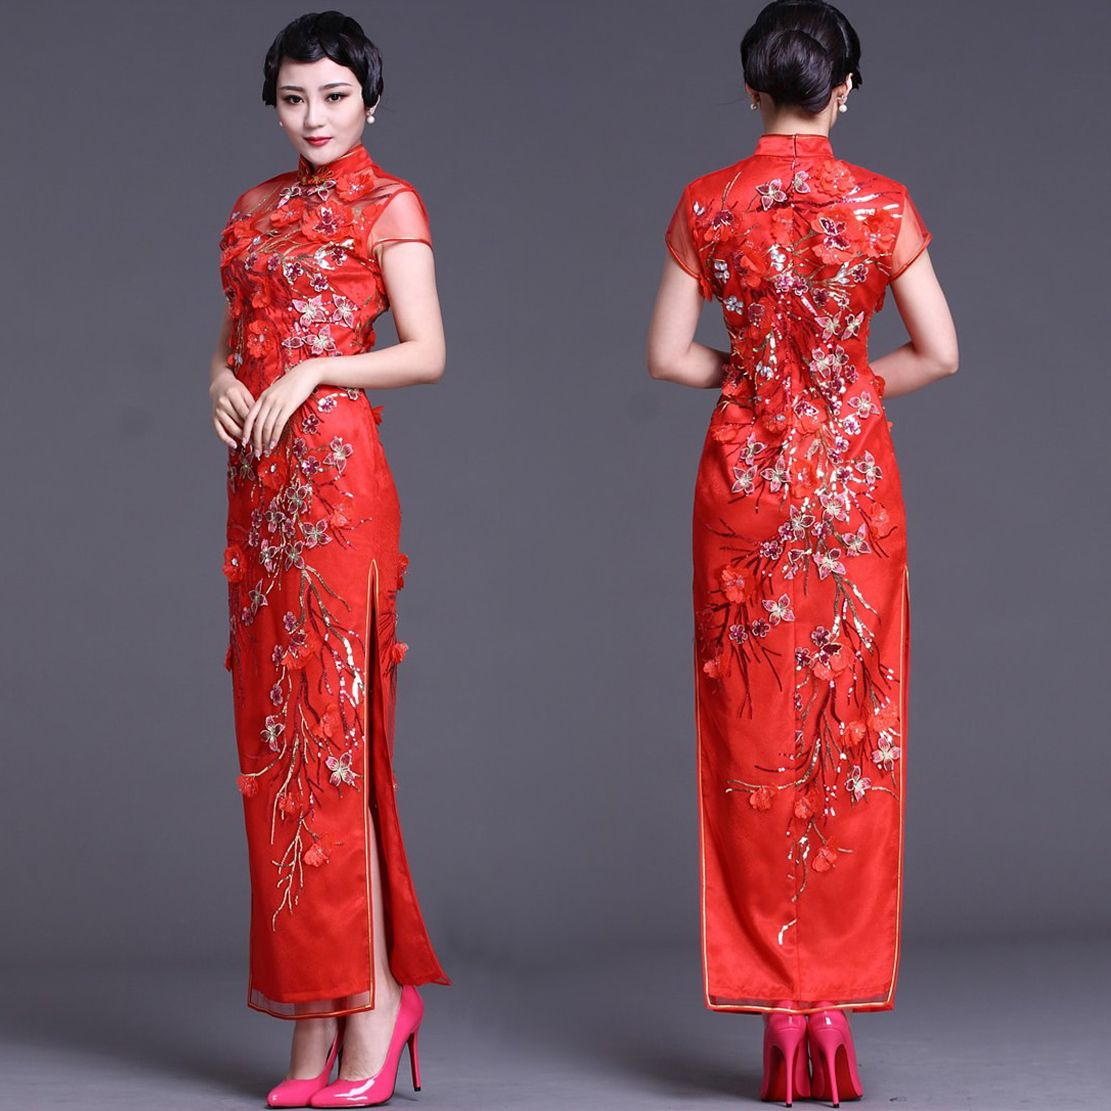 Embroidered red floral gauze qipao traditional chinese for Asian red wedding dresses